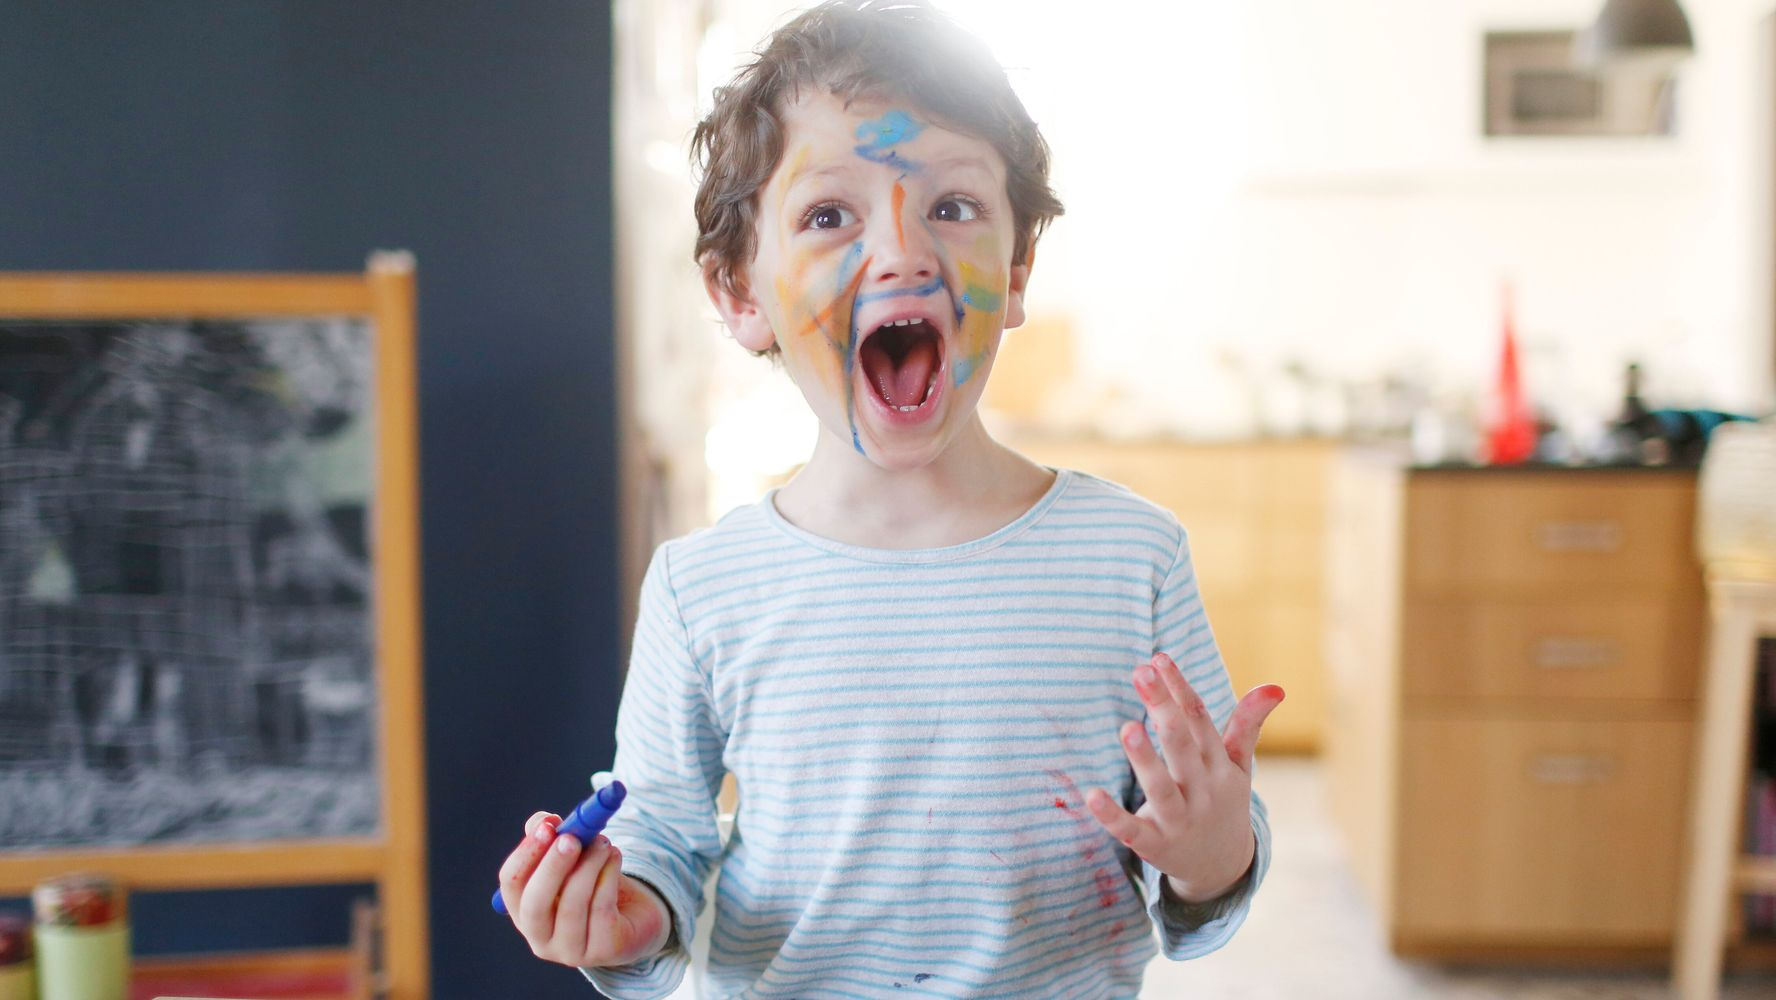 20-Minute Or Less Activities For Kids During Self-Isolation